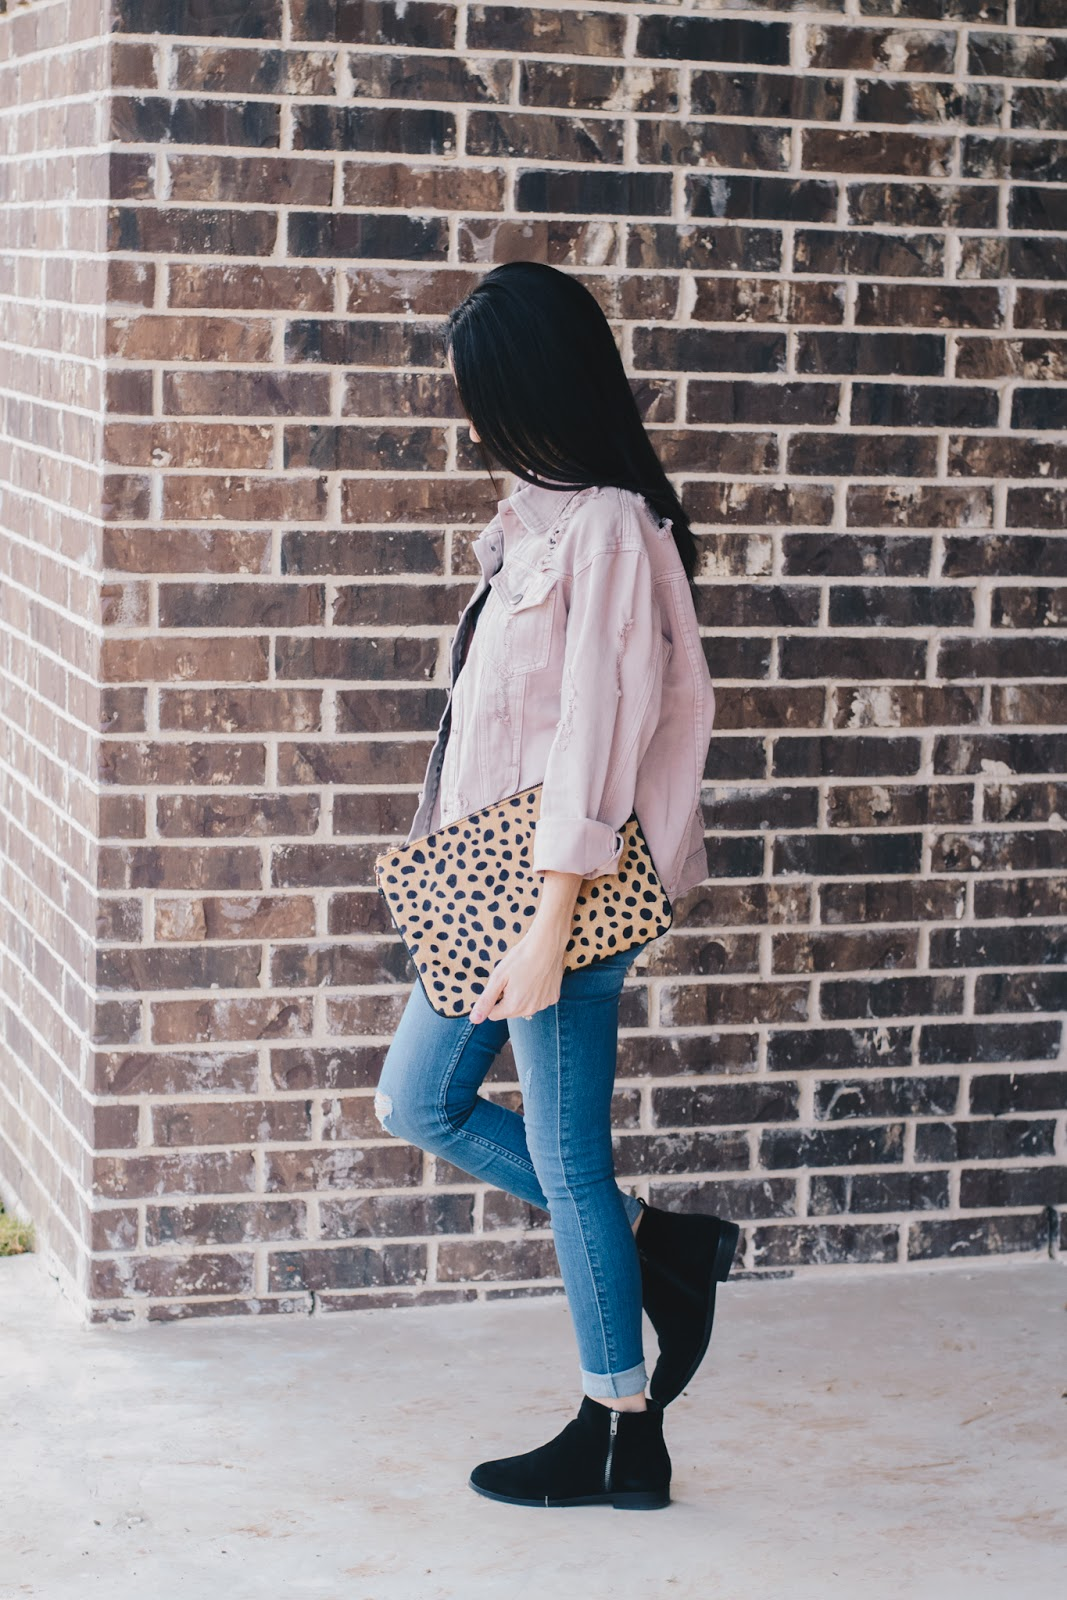 Throw on and go style in a distressed denim jacket and booties